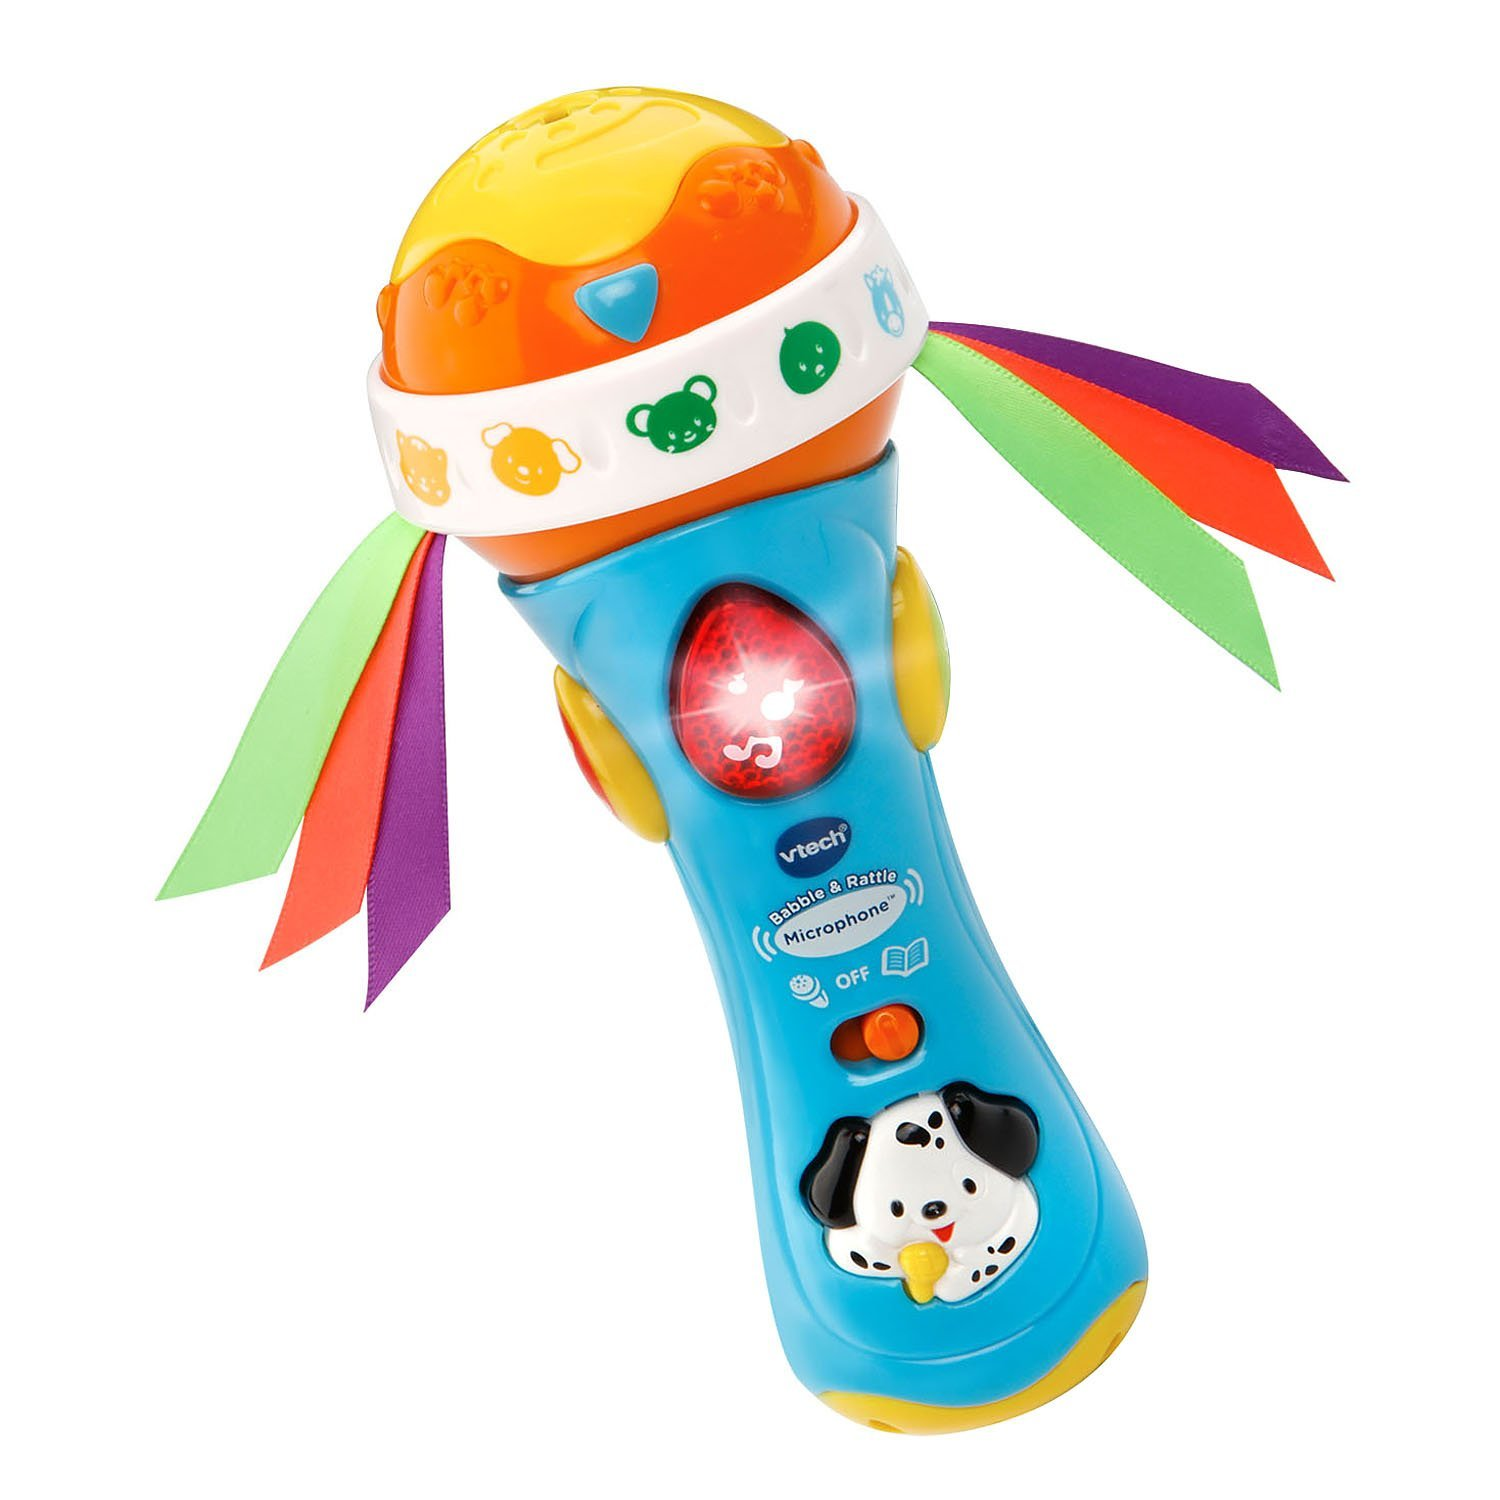 Ba Babble and Rattle Microphone, Brand Best Quality Warranty,From U.S, Brand VTech by